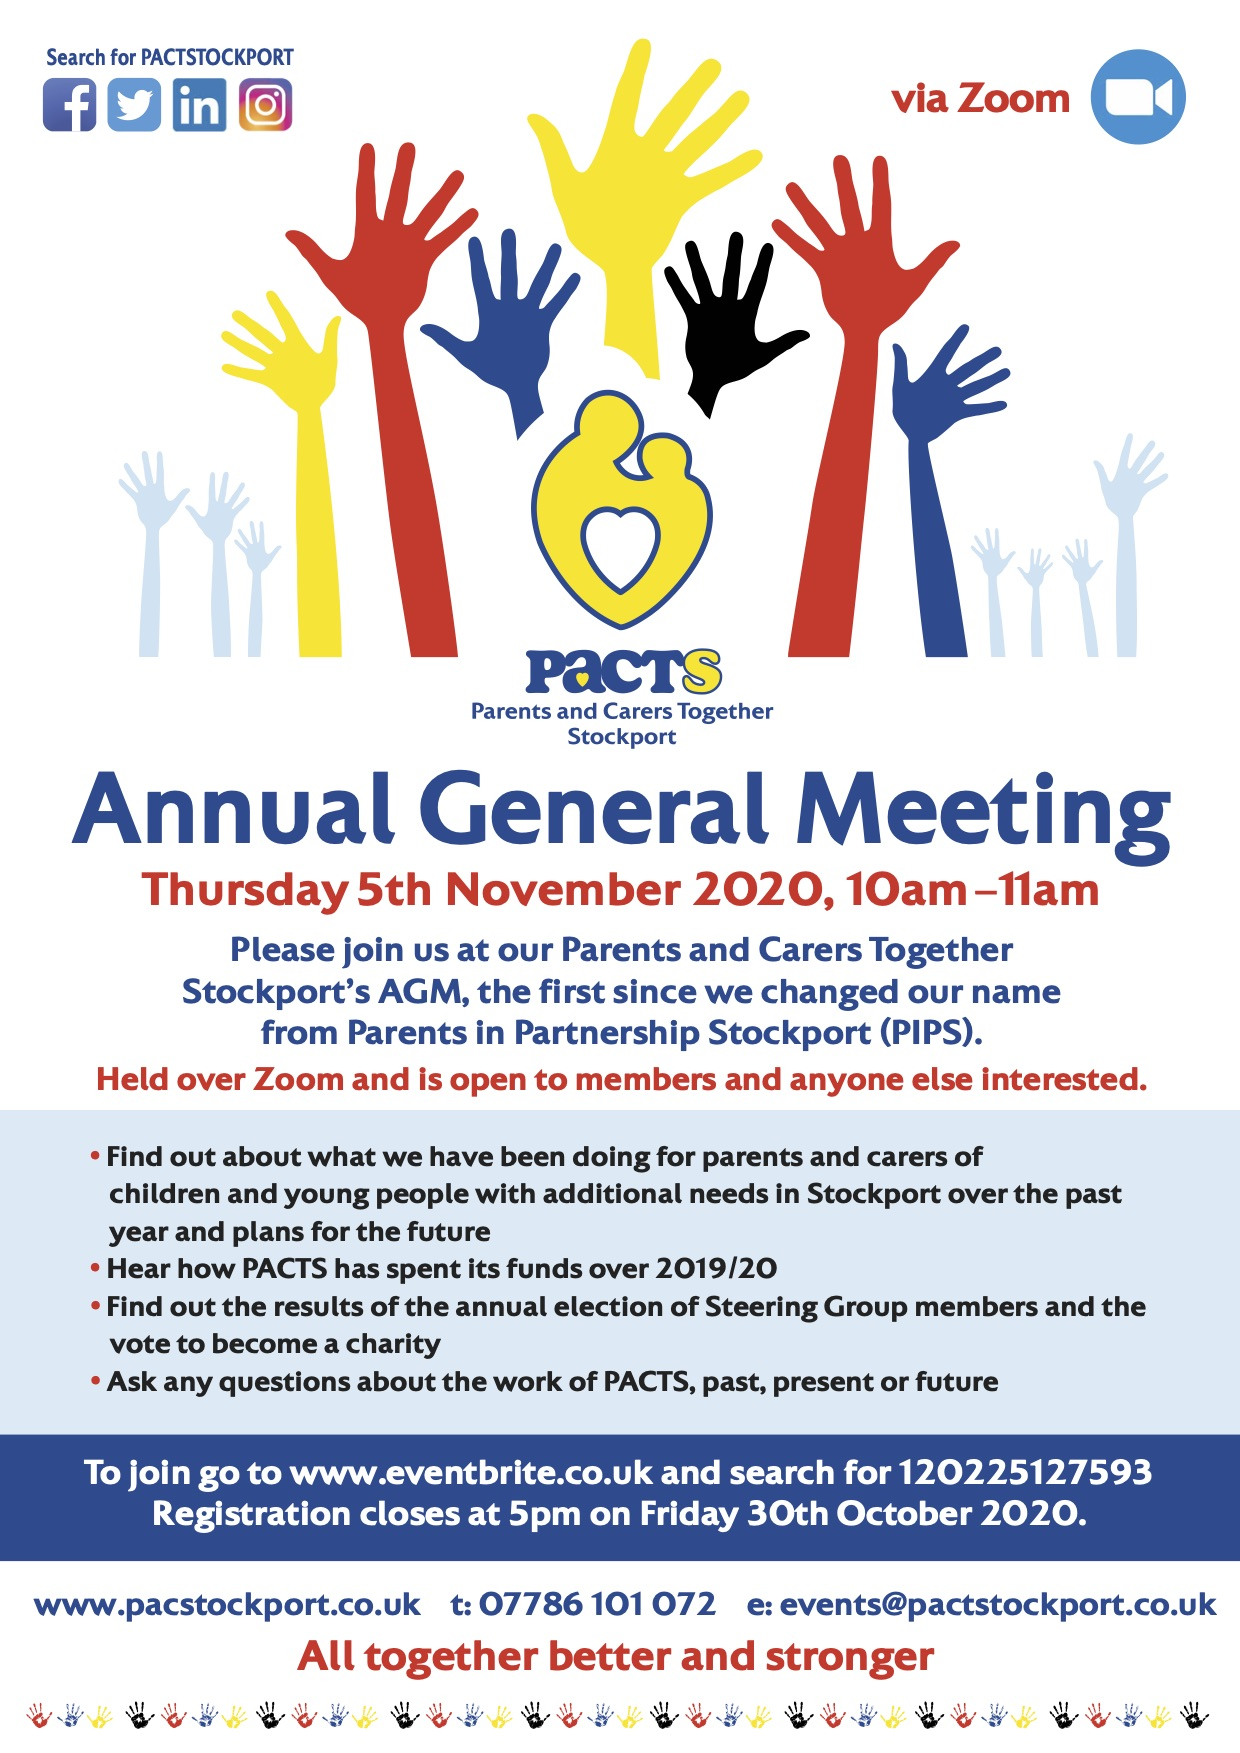 PACTS Stockport AGM